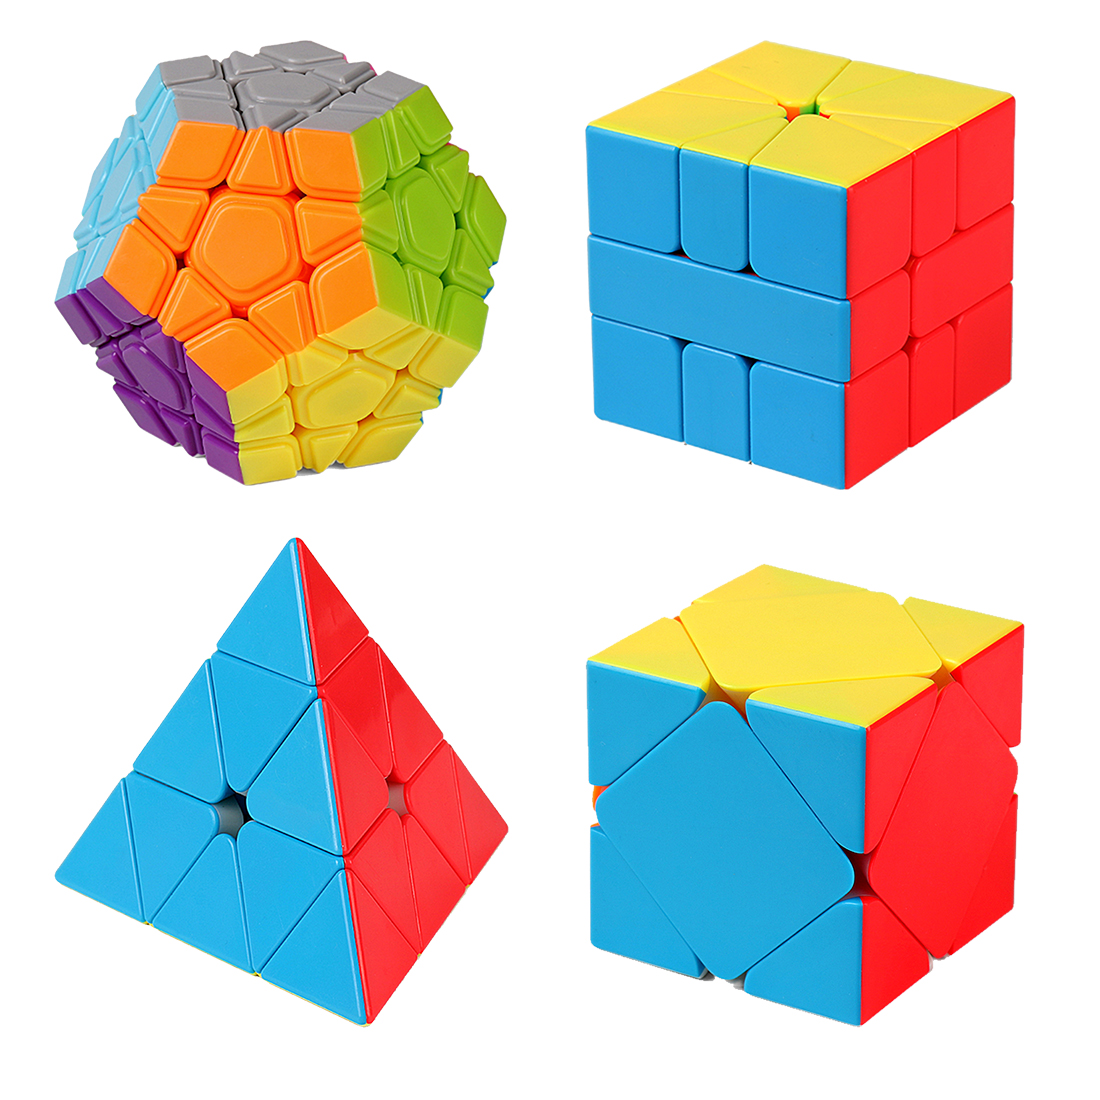 MF9305 Cubing Classroom WCA Official Competition Cube Gift Set Magic Cube Brain Teaser Puzzle Toy - Colorful yj brain teaser 2 x 2 x 2 magic iq cube multicolored